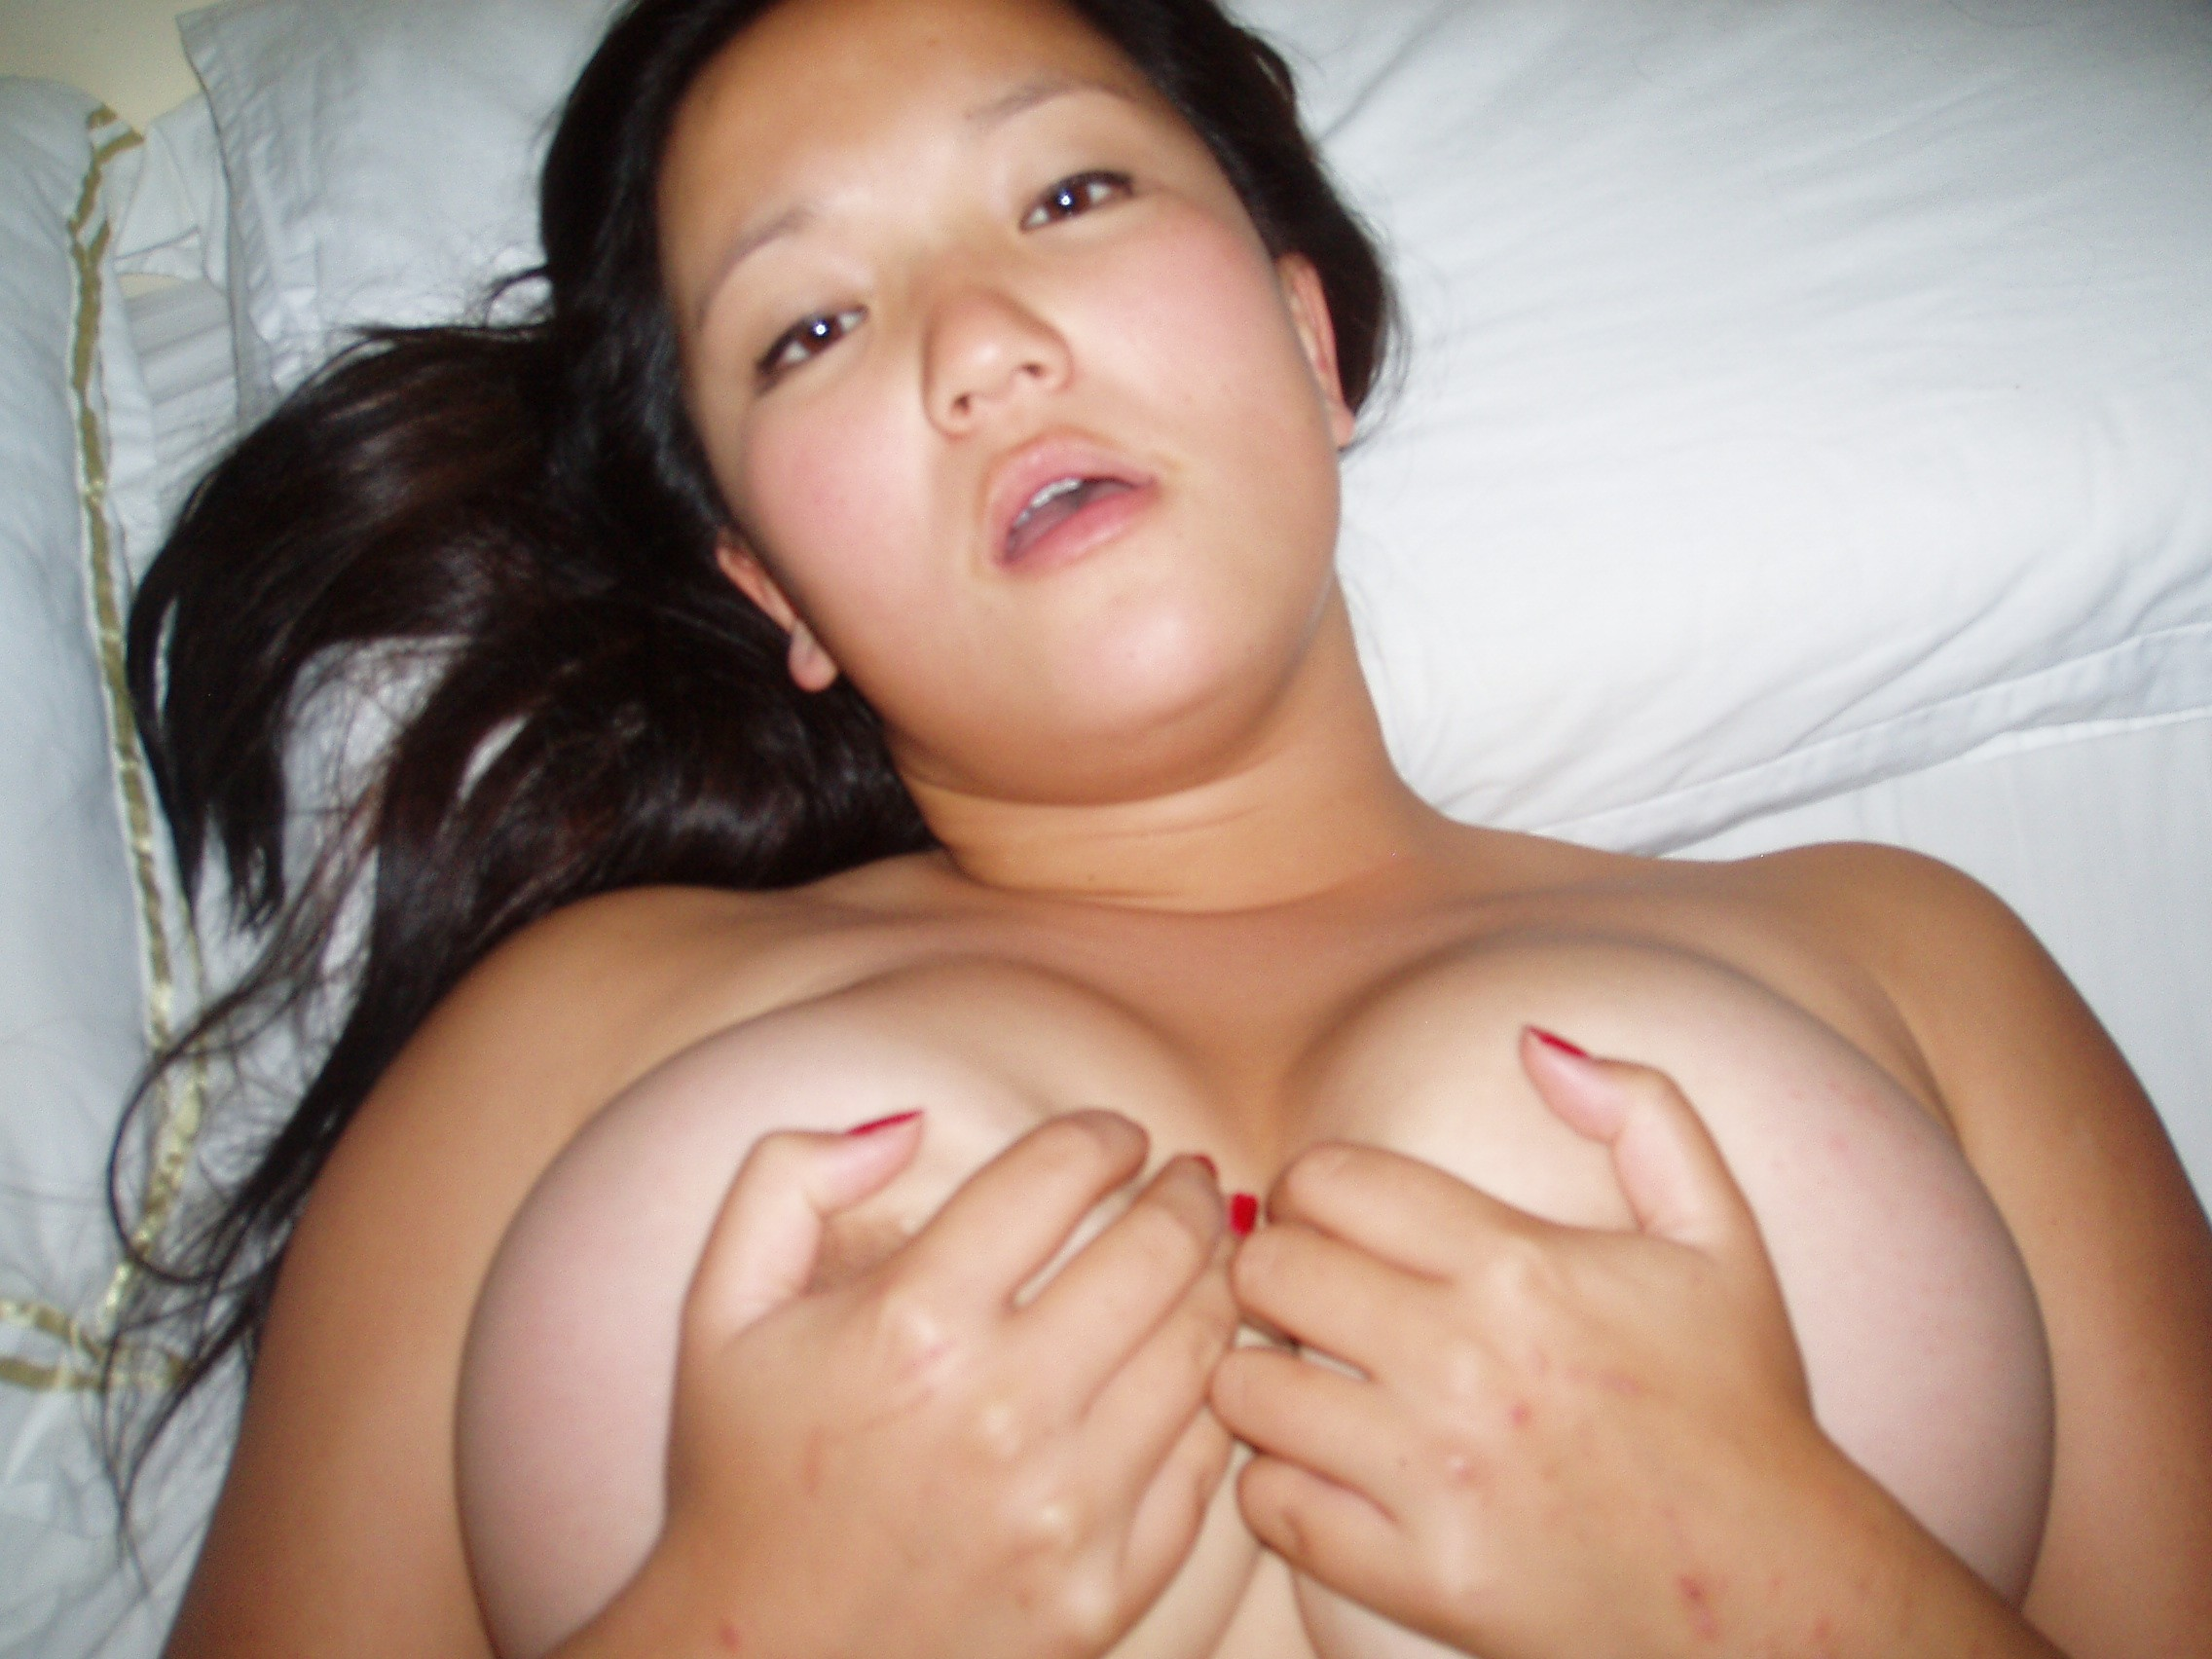 Big Tits On This Sexy Asian Teen Giving Blowjob  Nude -6268